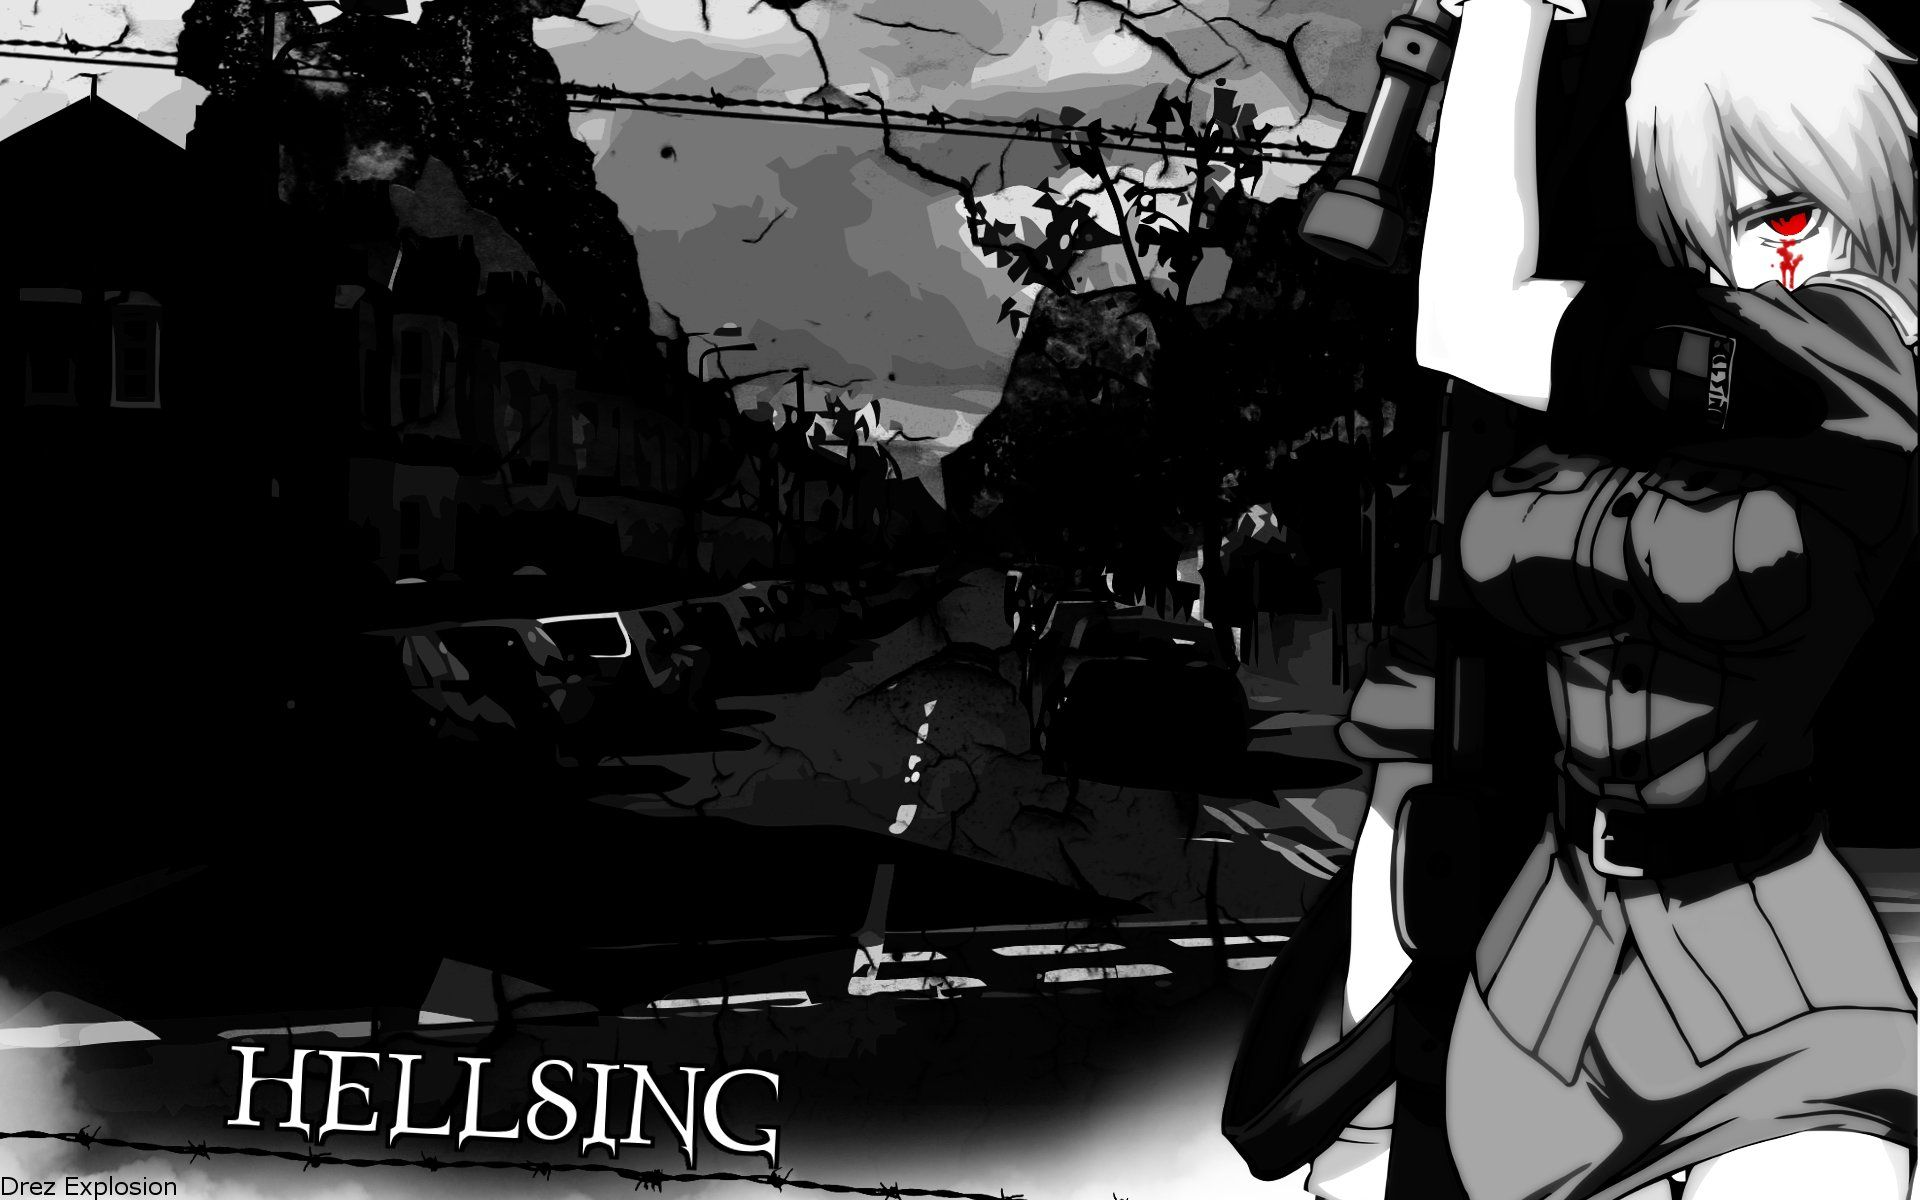 Gothic Anime Hd Wallpapers Cool Anime Wallpapers Anime Wallpaper Gothic Anime